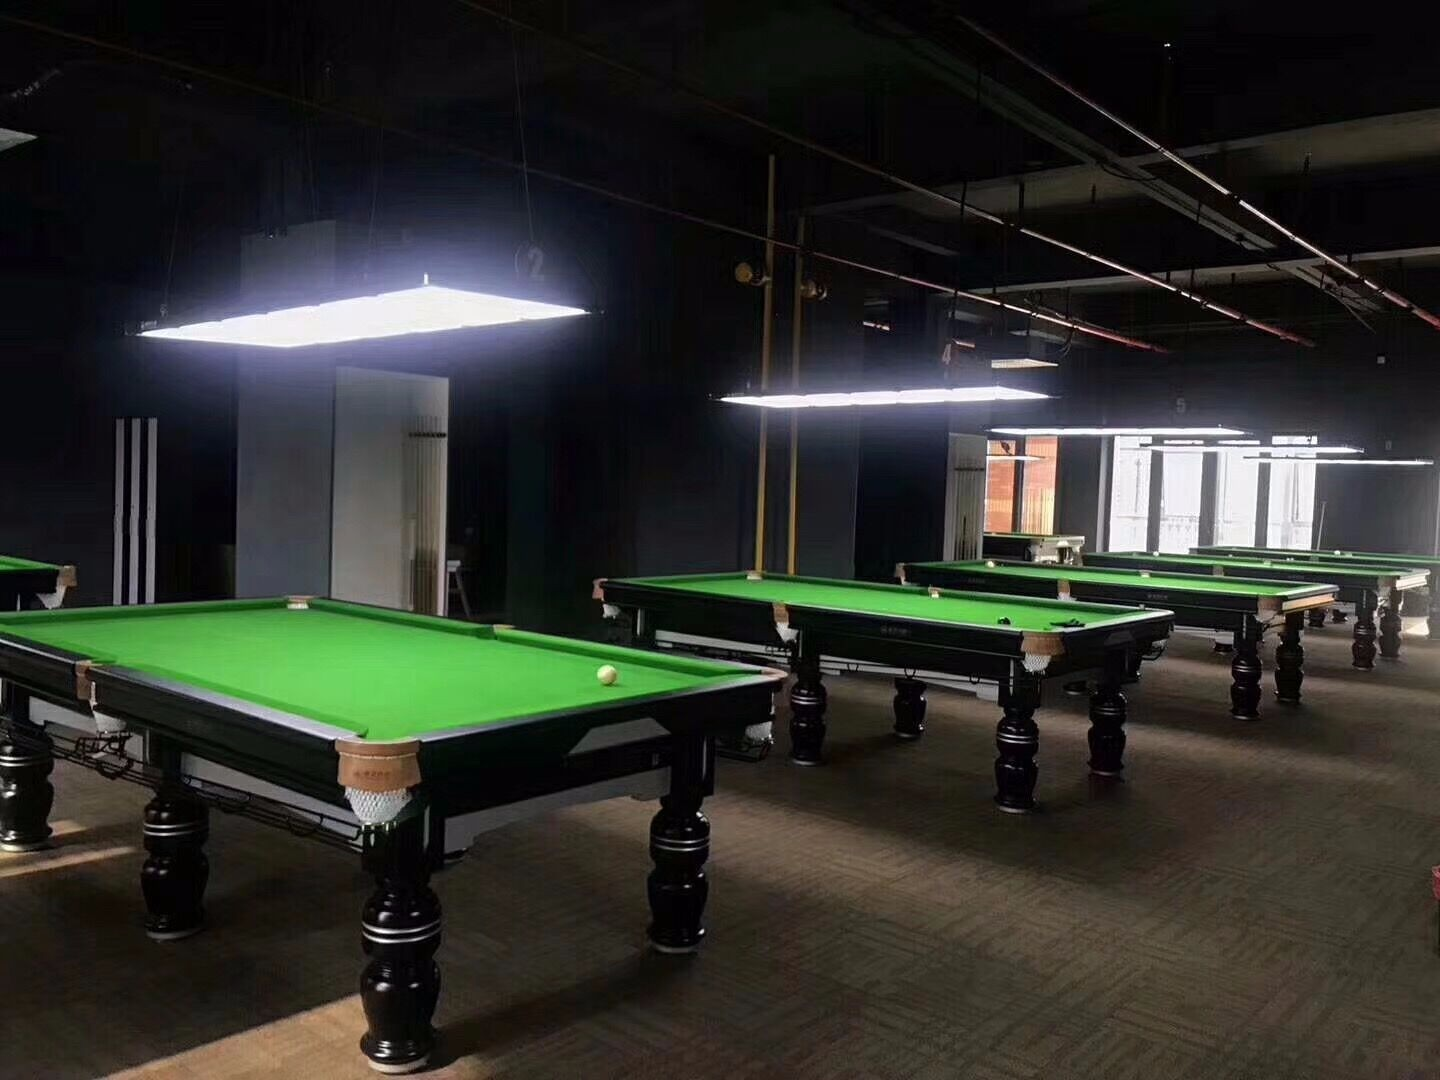 new pool hall in UK